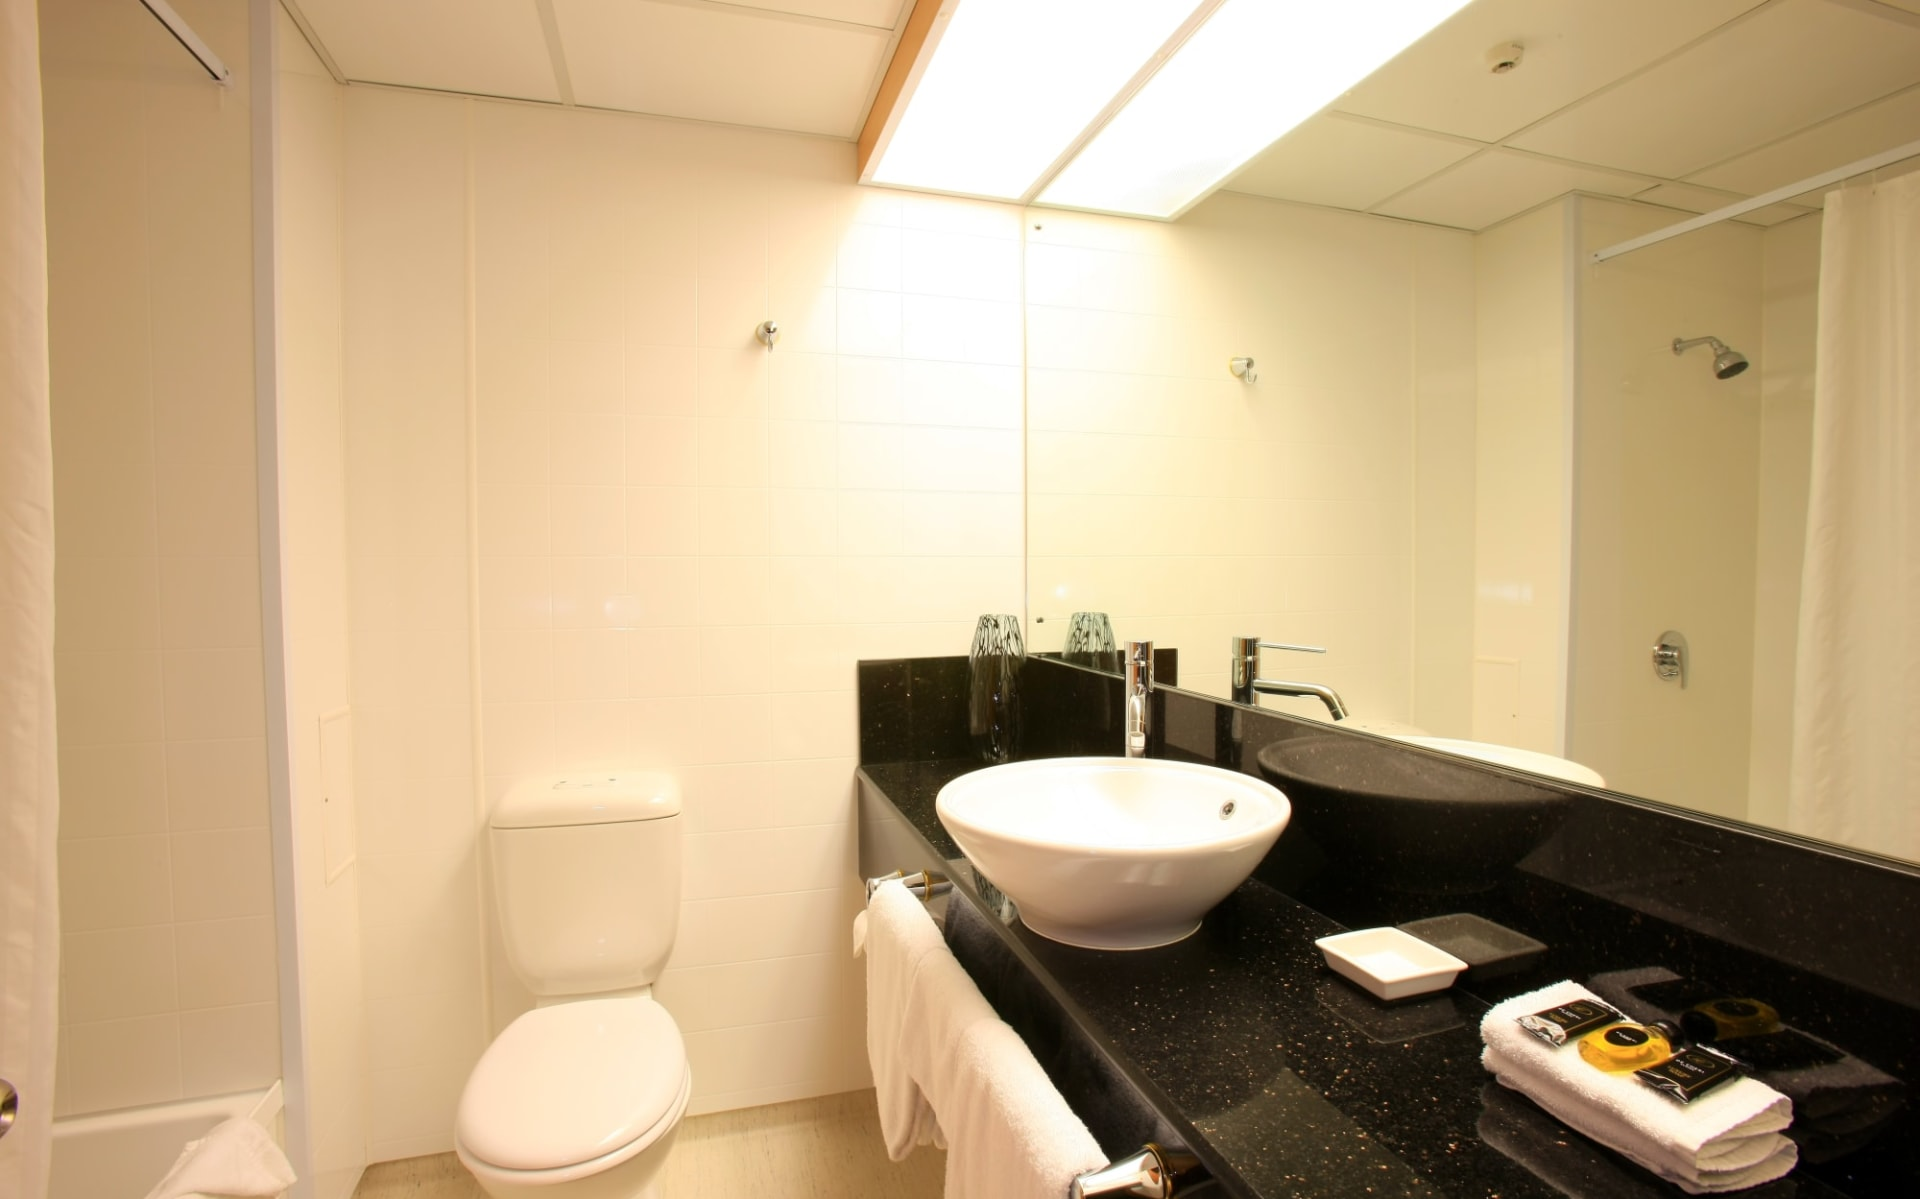 Distinction Luxmore in Te Anau:  DH-Luxmore-Deluxe-Hotel-Room-Bathroom-R16212